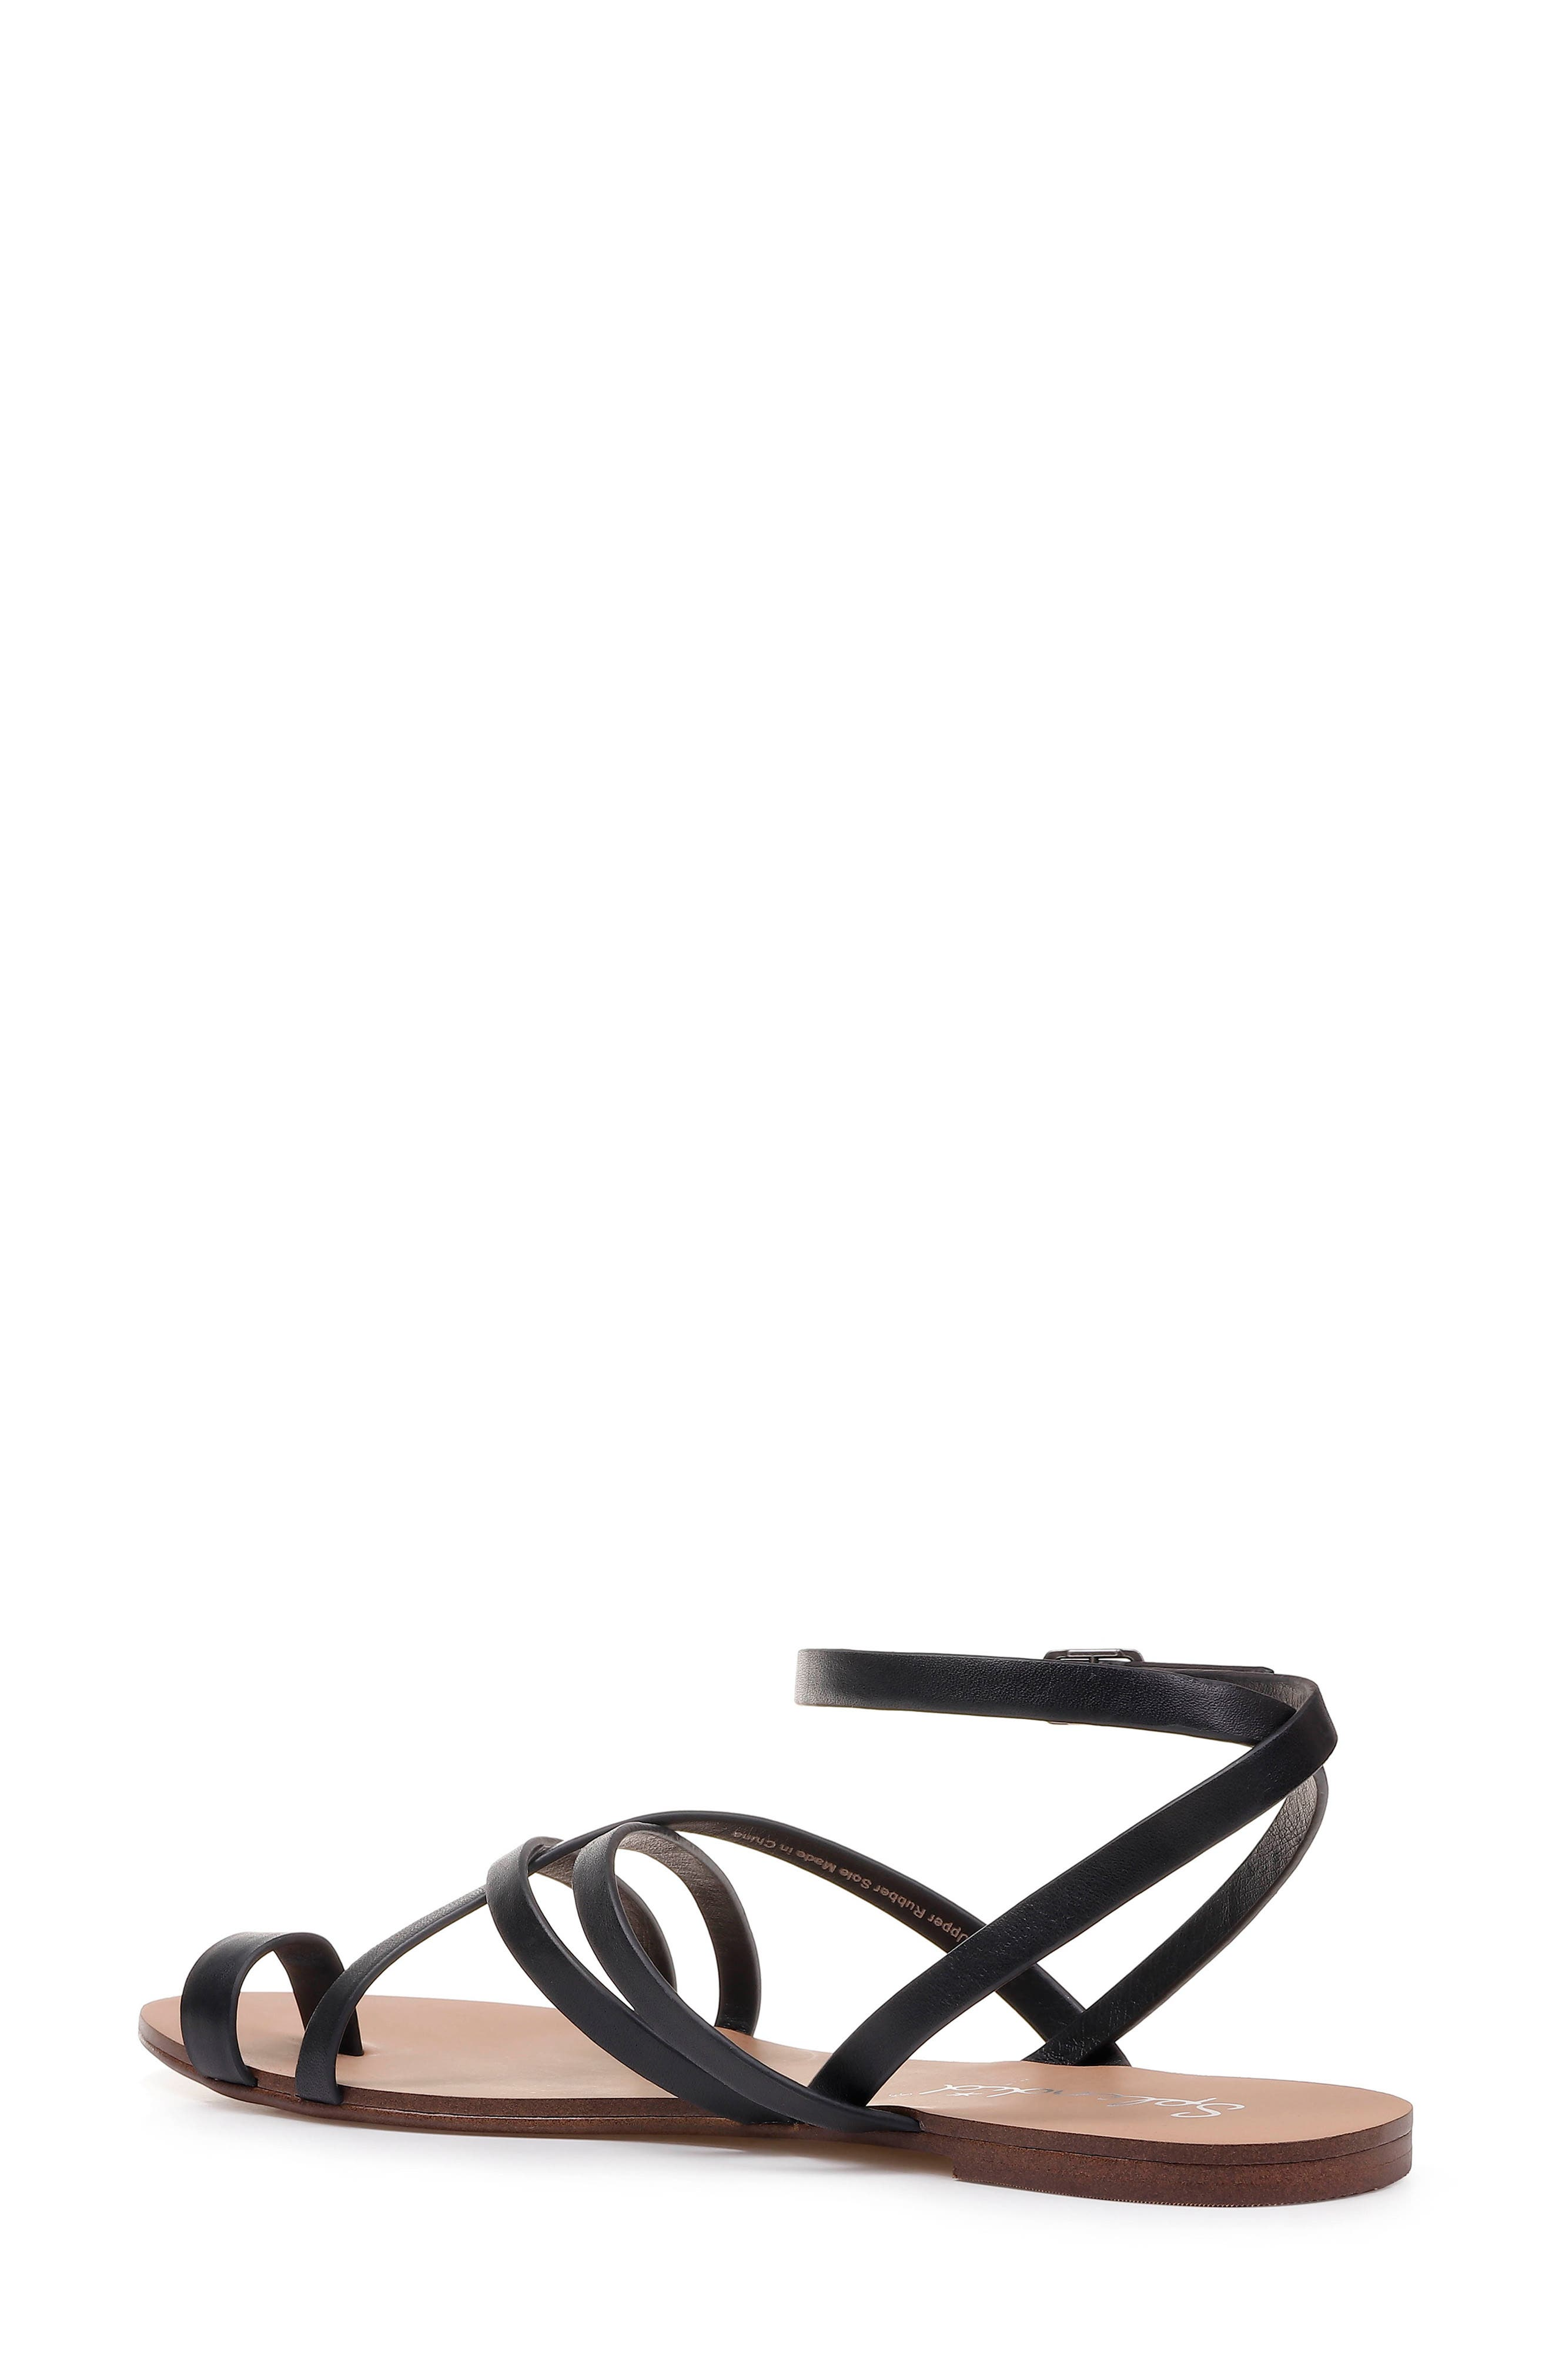 SPLENDID, Sully Strappy Toe Loop Sandal, Alternate thumbnail 2, color, BLACK LEATHER